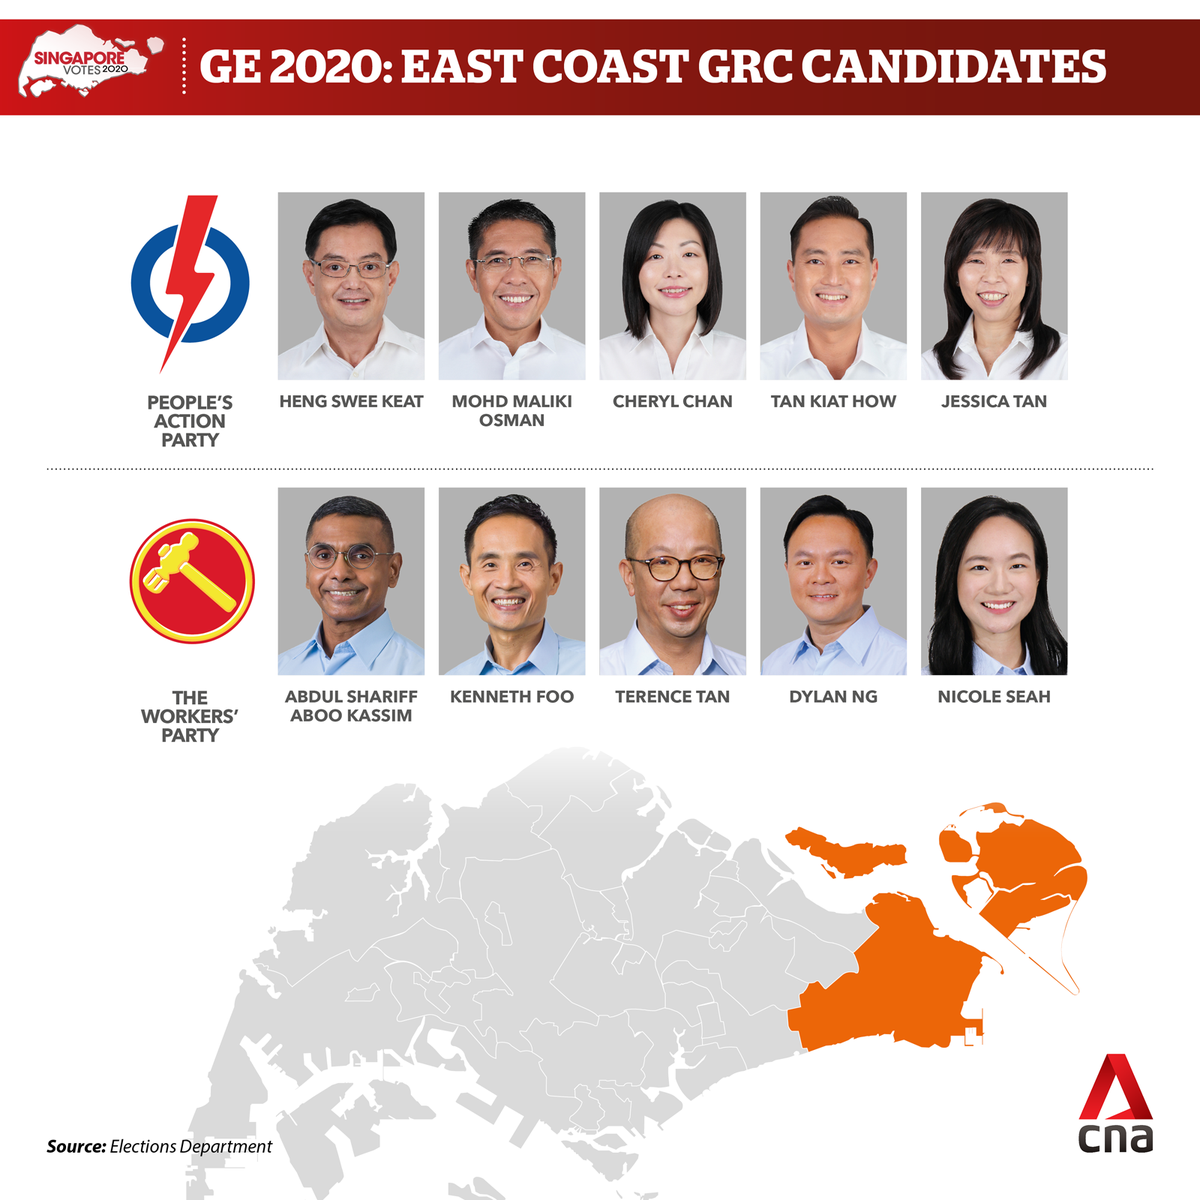 SAMPLE COUNT FOR EAST COAST GRC PAP 54% vs WP 46% #GE2020 https://t.co/QUstD1VidT https://t.co/P2tj3P4oNO